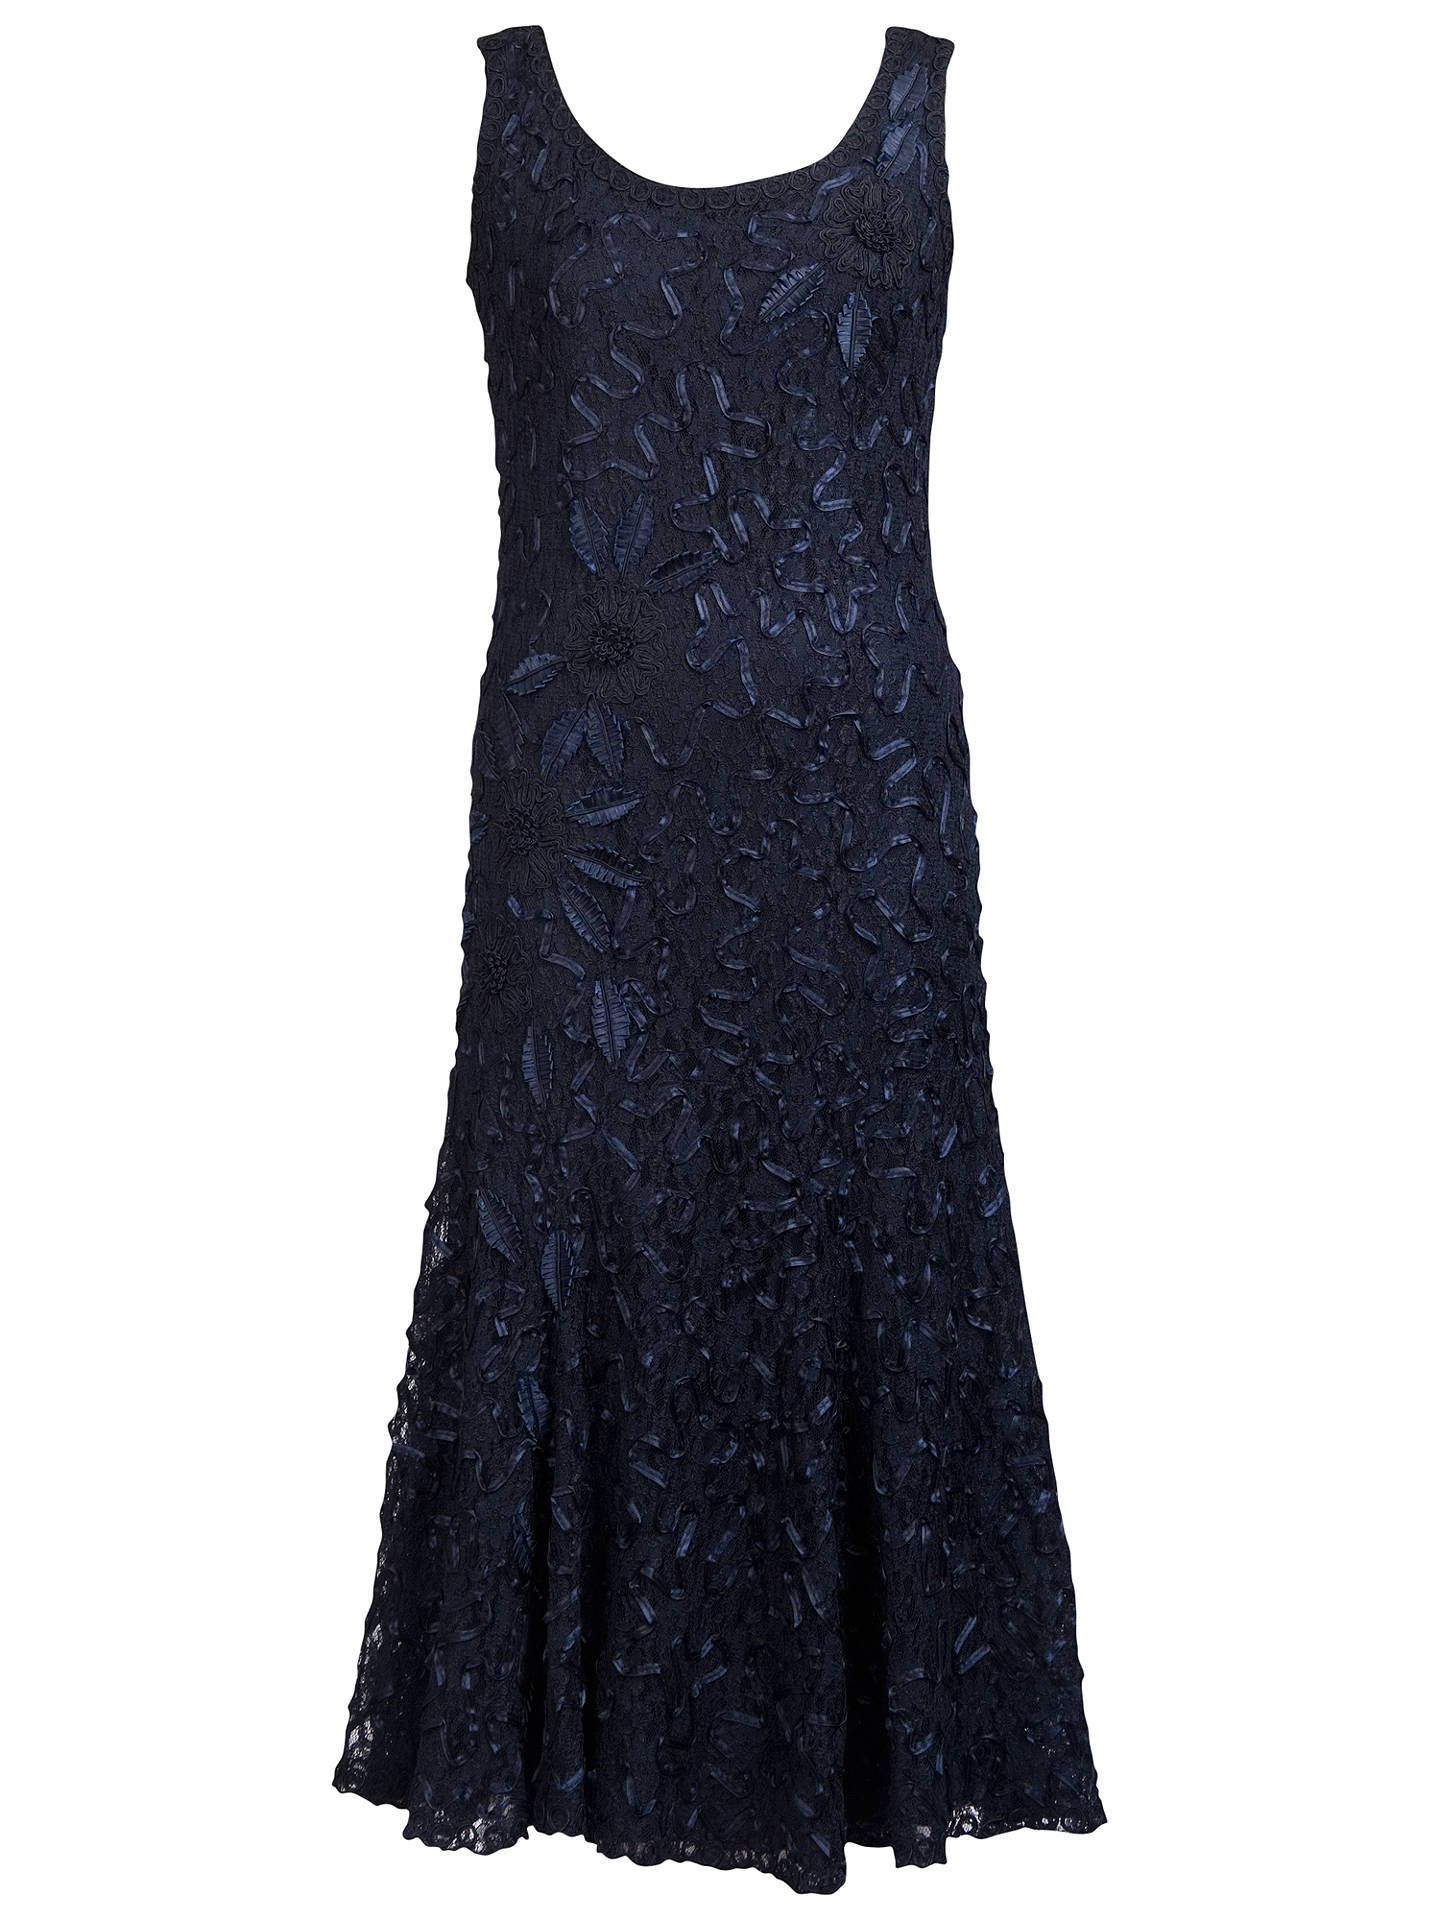 BuyChesca Cornelli Lace Dress, Navy, 12 Online at johnlewis.com